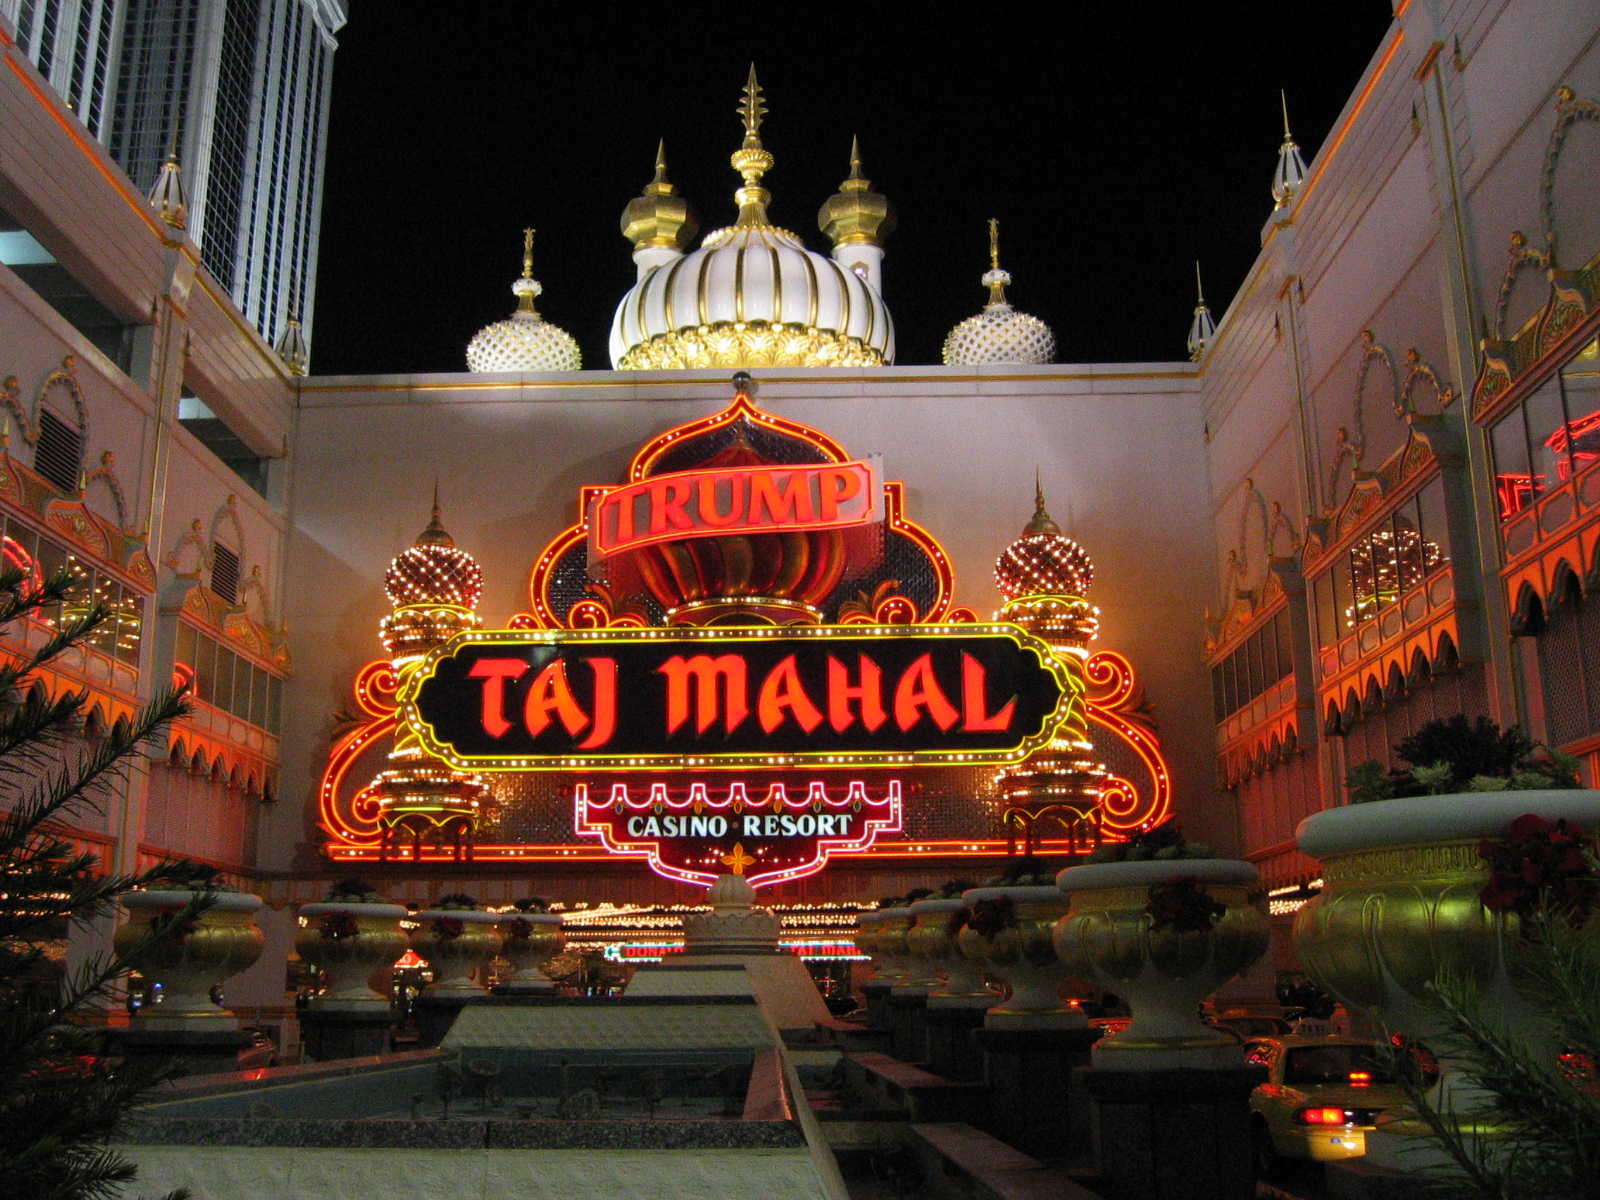 Taj Mahal Marks Fifth Casino Closure in AC - Bovada Casino Blog